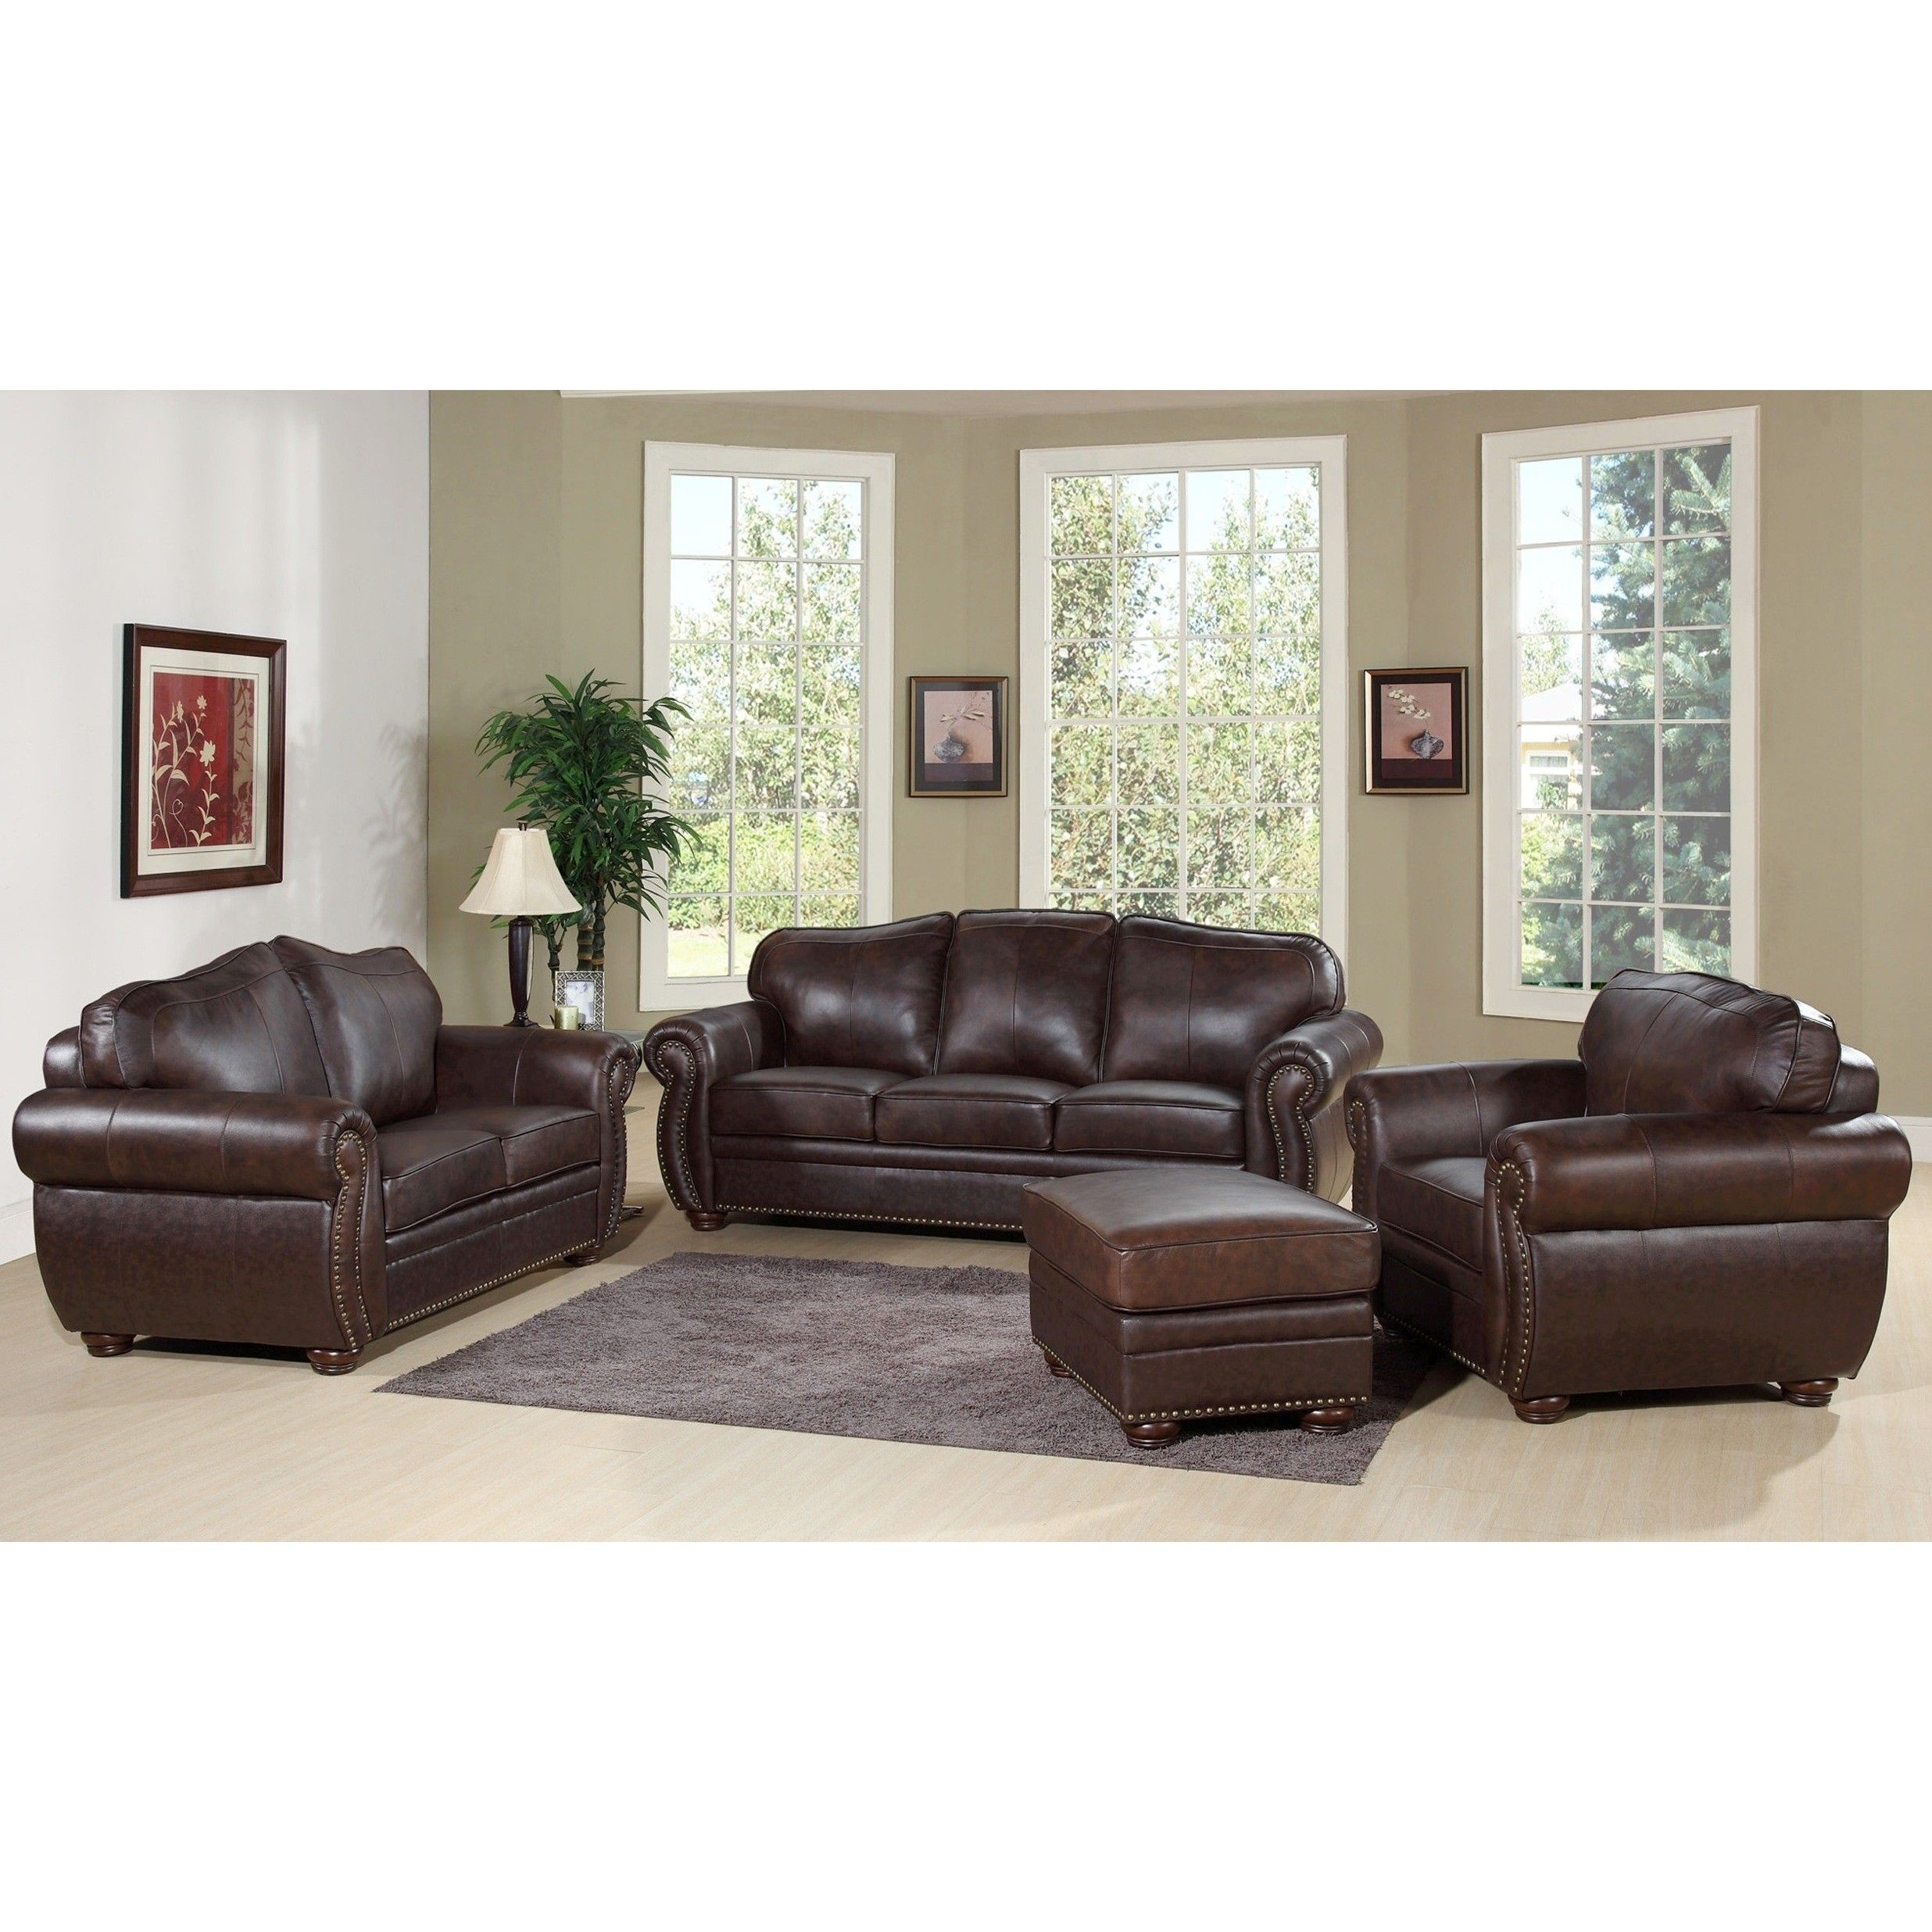 Grey Leather Sofa And Loveseat Best Leather Sofa Leather Sofa Set Grey Leather Sofa